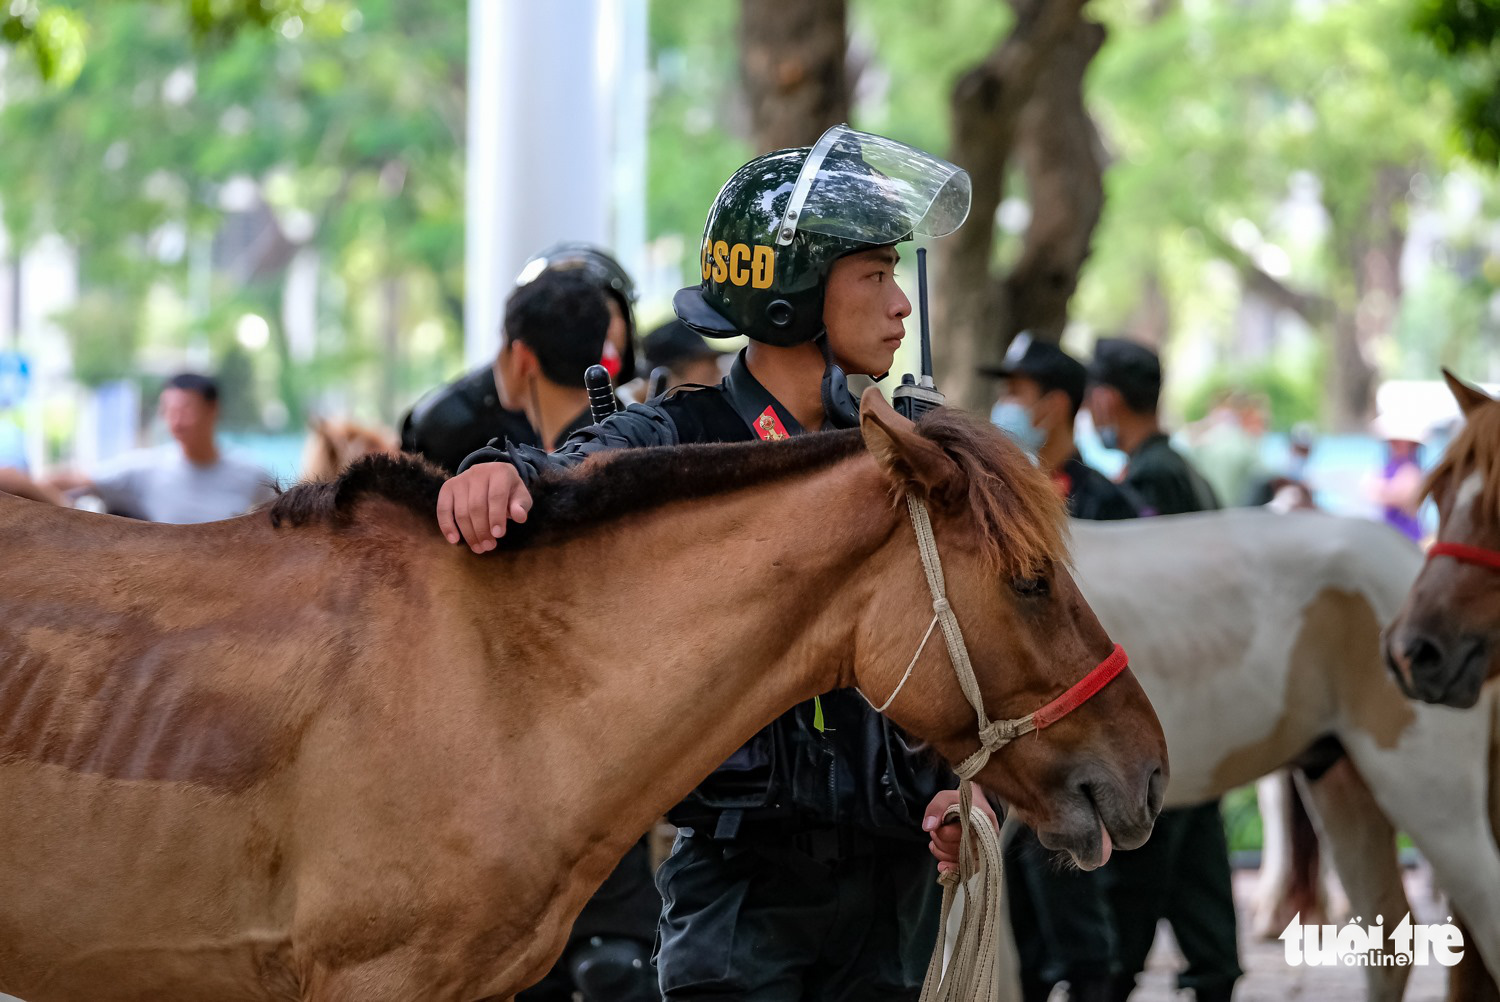 An officer from the Mounted Mobile Police Corps is pictured in Hanoi, Vietnam, June 8, 2020. Photo: Tien Long / Tuoi Tre